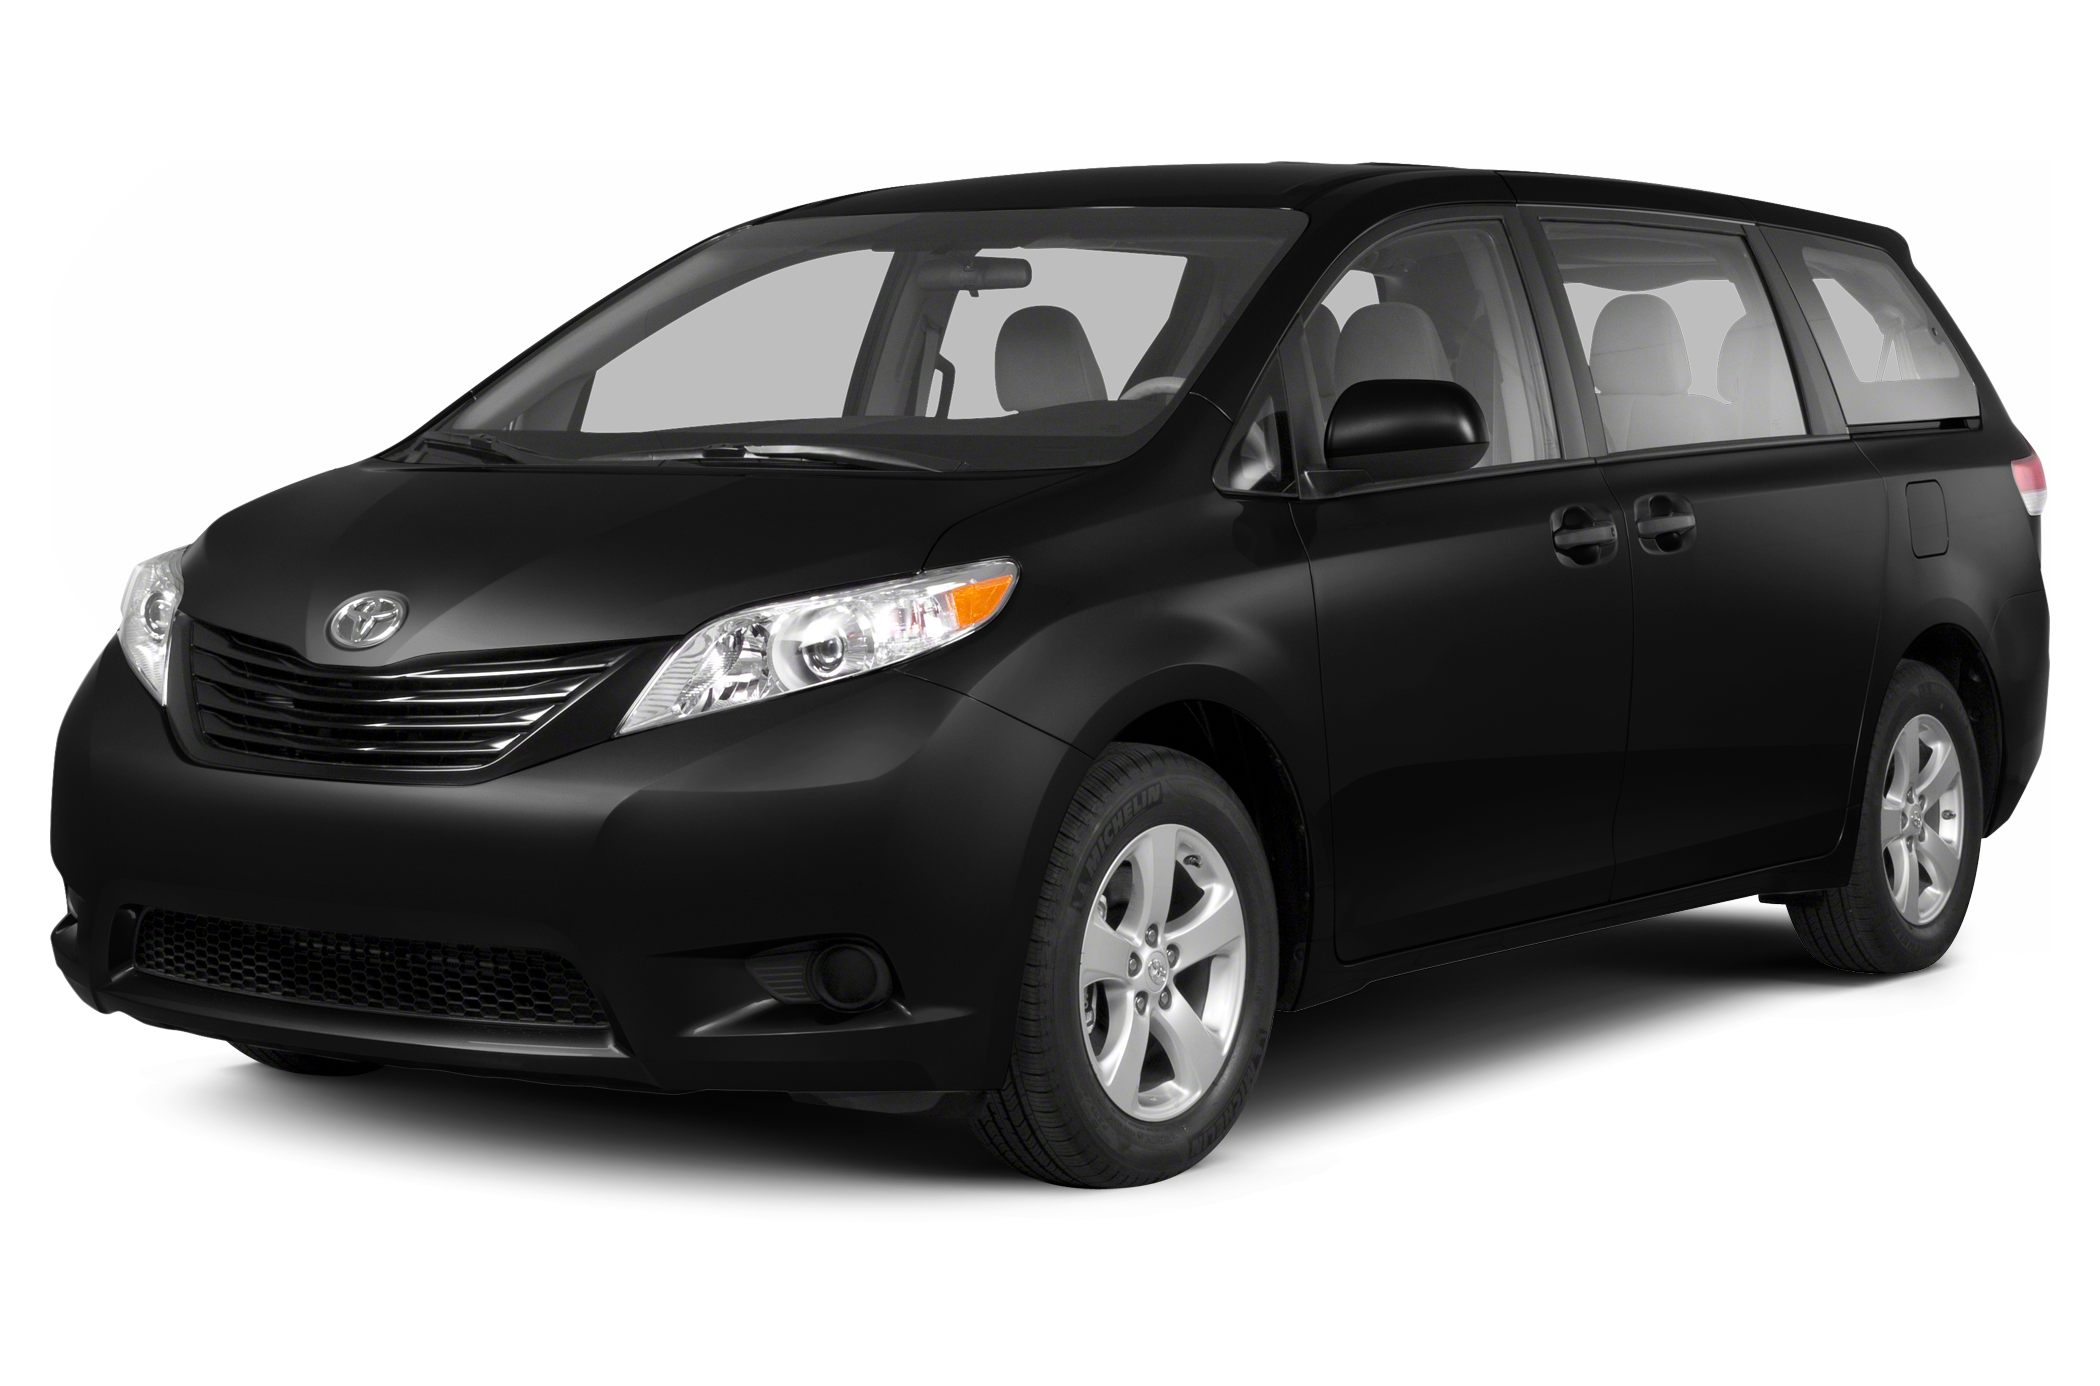 2013 Toyota Sienna XLE 7 Passenger SILVER SKY METALLIC exterior and LIGHT GRAY interior XLE trim